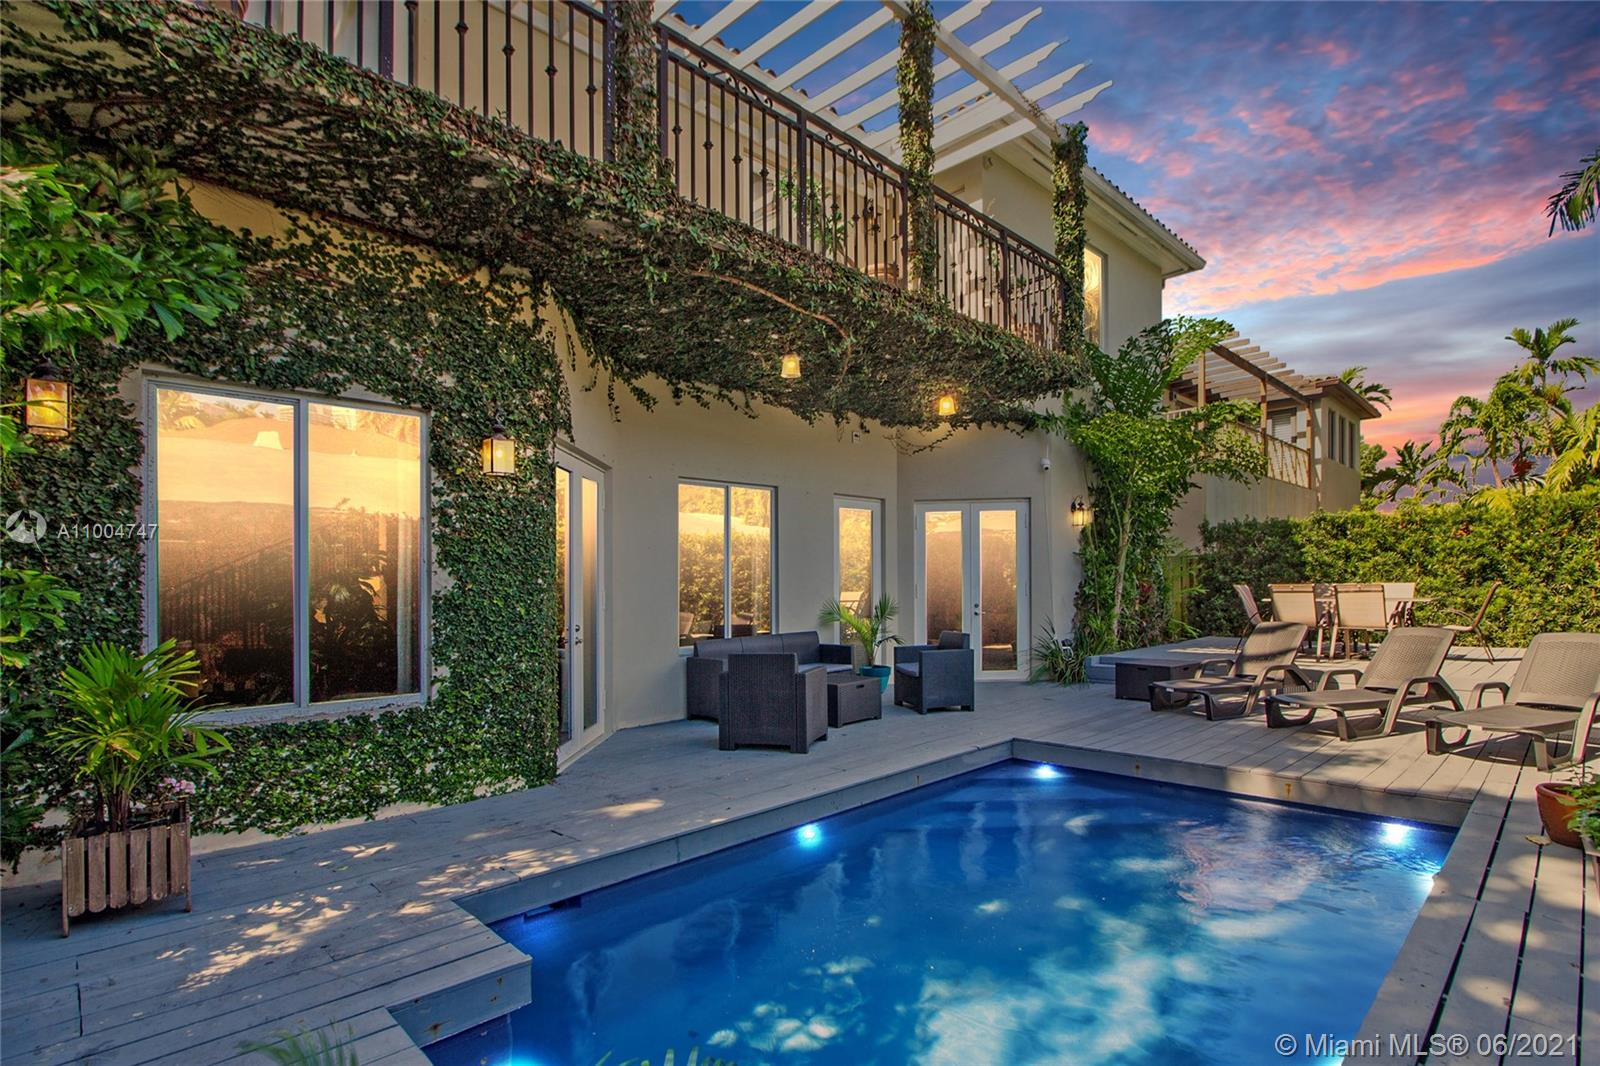 BACK ON MARKET & PRICED TO SELL! Spectacular 5 BD/5.5 BT w/two-car garage boasts 4,106 SF on 7,110 SF corner lot on historic & in high-demand South Miami Avenue! First floor soars +20' ceilings, elegant foyer w/grand staircase, travertine floors, 1 corner BR w/en-suite bath, formal dining, cabana bath, living & expansive family room opens to a serene, wood-decked patio/plunge pool, etc. 2nd floor- large ent. suite resides atop the stairs, double-doors open to large master BR w/dark wood floors, separate entry to his/her closets flows into a grandiose bath & 4 en-suite BRs. Steps from Brickell & blocks to I-95 for easy access to Design District, SoBe & rest of SoFla. Luxury living w/all of Brickell amenities, shopping, restaurants & blocks to water! Zoning allows home/office use. 5% CAP